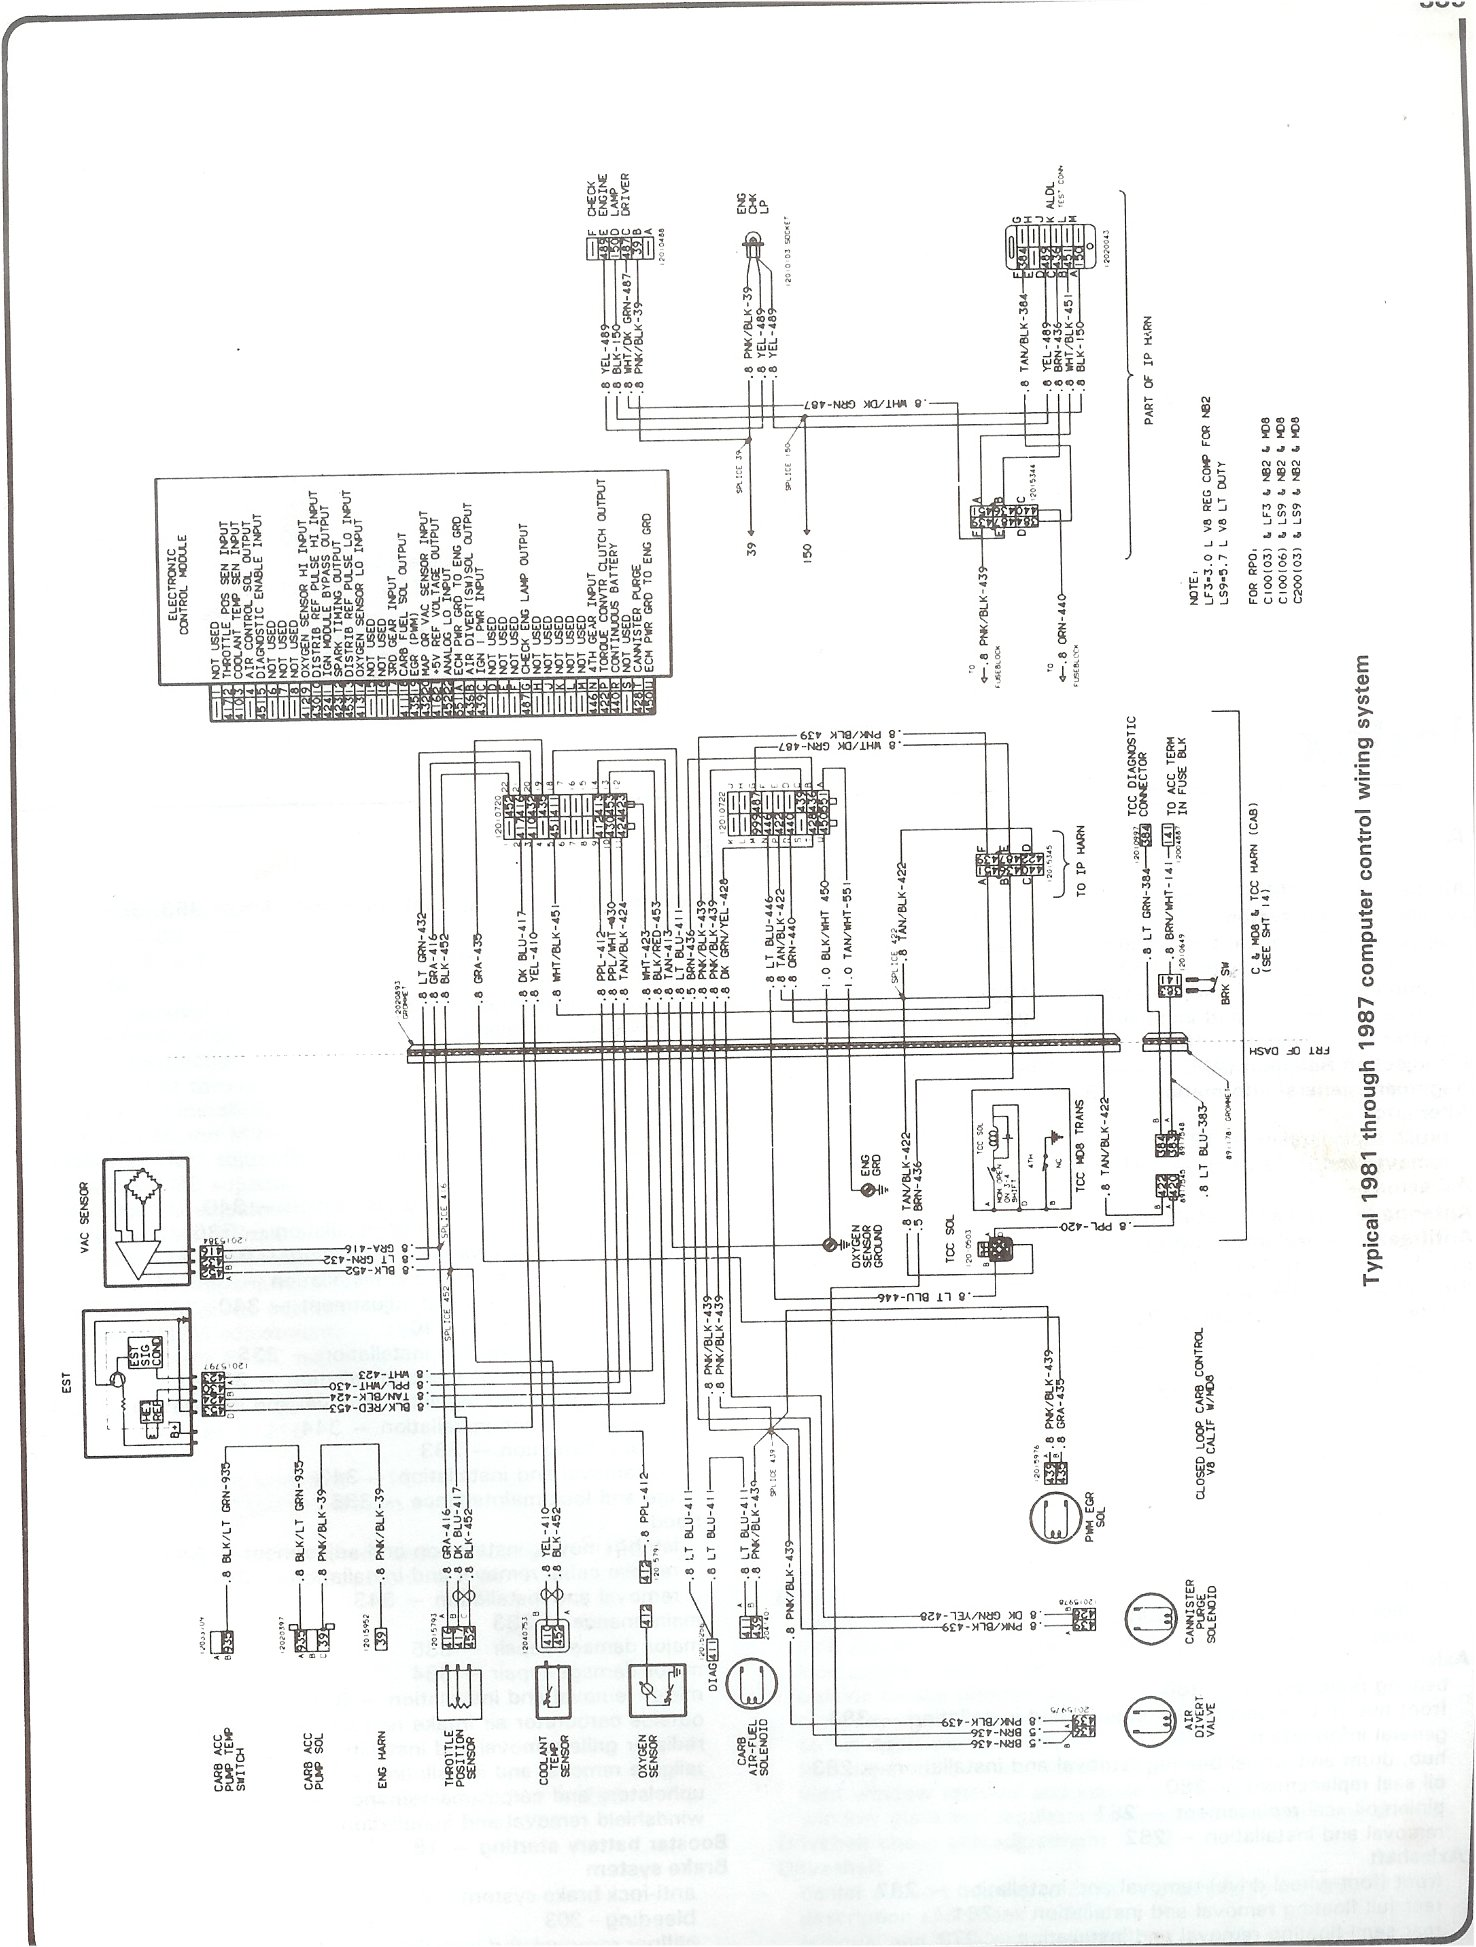 1985 Chevy 350 Wiring Diagram | Wiring Diagram on 1985 gmc fuse box diagram, 1986 gmc wiring diagram, 1991 gmc wiring diagram, 1985 gmc fuel tank, 1985 gmc parts, 1985 toyota pickup vacuum diagram, 1985 gmc engine diagram, gmc s15 wiring diagram, 2008 toyota tundra wiring diagram, 2007 toyota tacoma wiring diagram, 2011 toyota tacoma wiring diagram, 1985 gmc body, 1984 gmc wiring diagram, 85 corvette wiring diagram, 1985 gmc steering column diagram, 1985 gmc vacuum diagram, gmc sierra wiring diagram, 1985 gmc brakes diagram, 86 corvette dash wiring diagram,